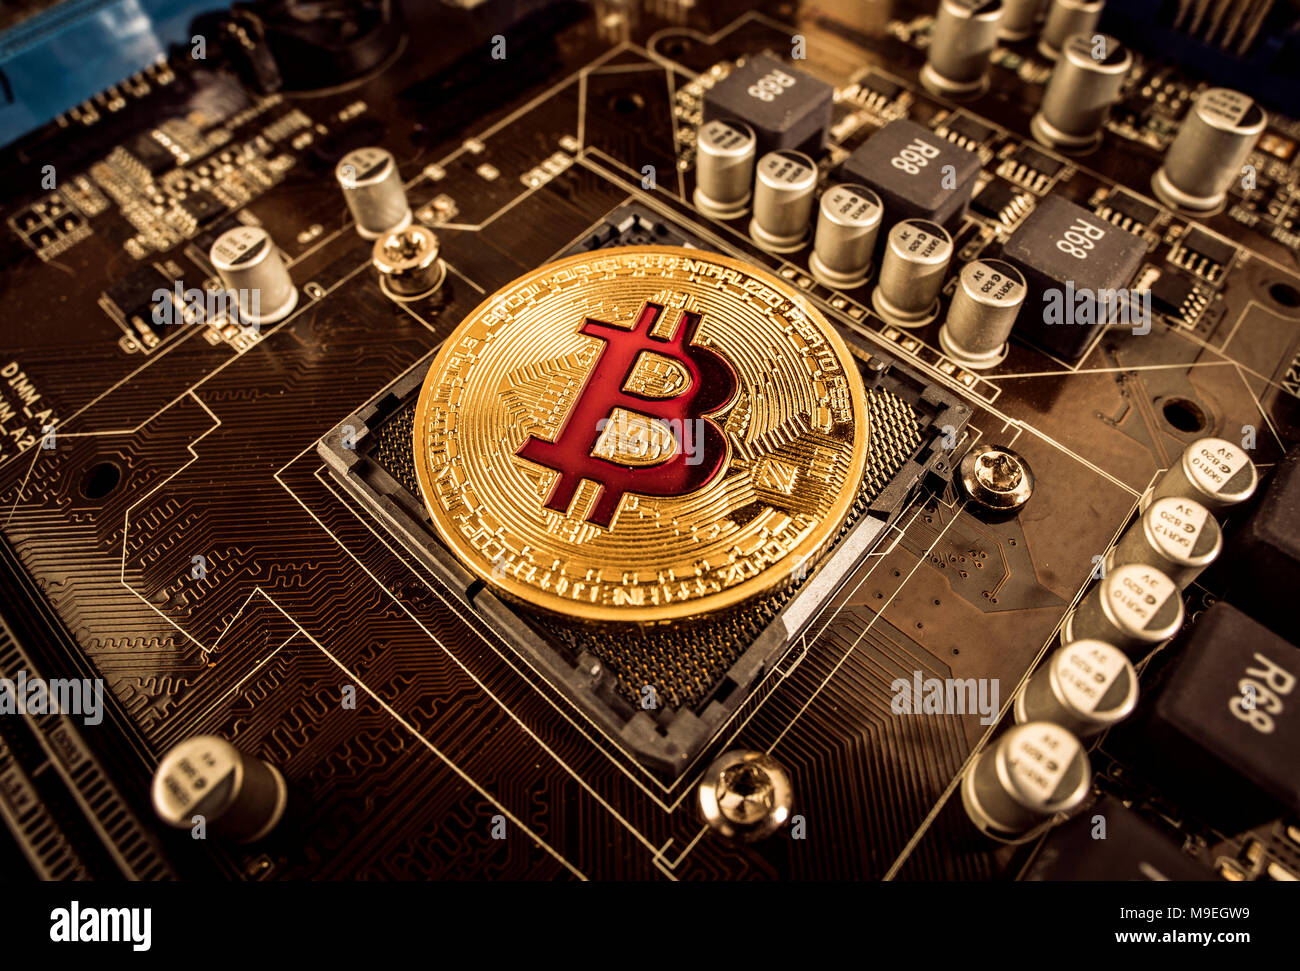 Gold Bit Coin BTC coins on the motherboard. Bitcoin is a worldwide cryptocurrency and digital payment system called the first decentralized digital cu - Stock Image